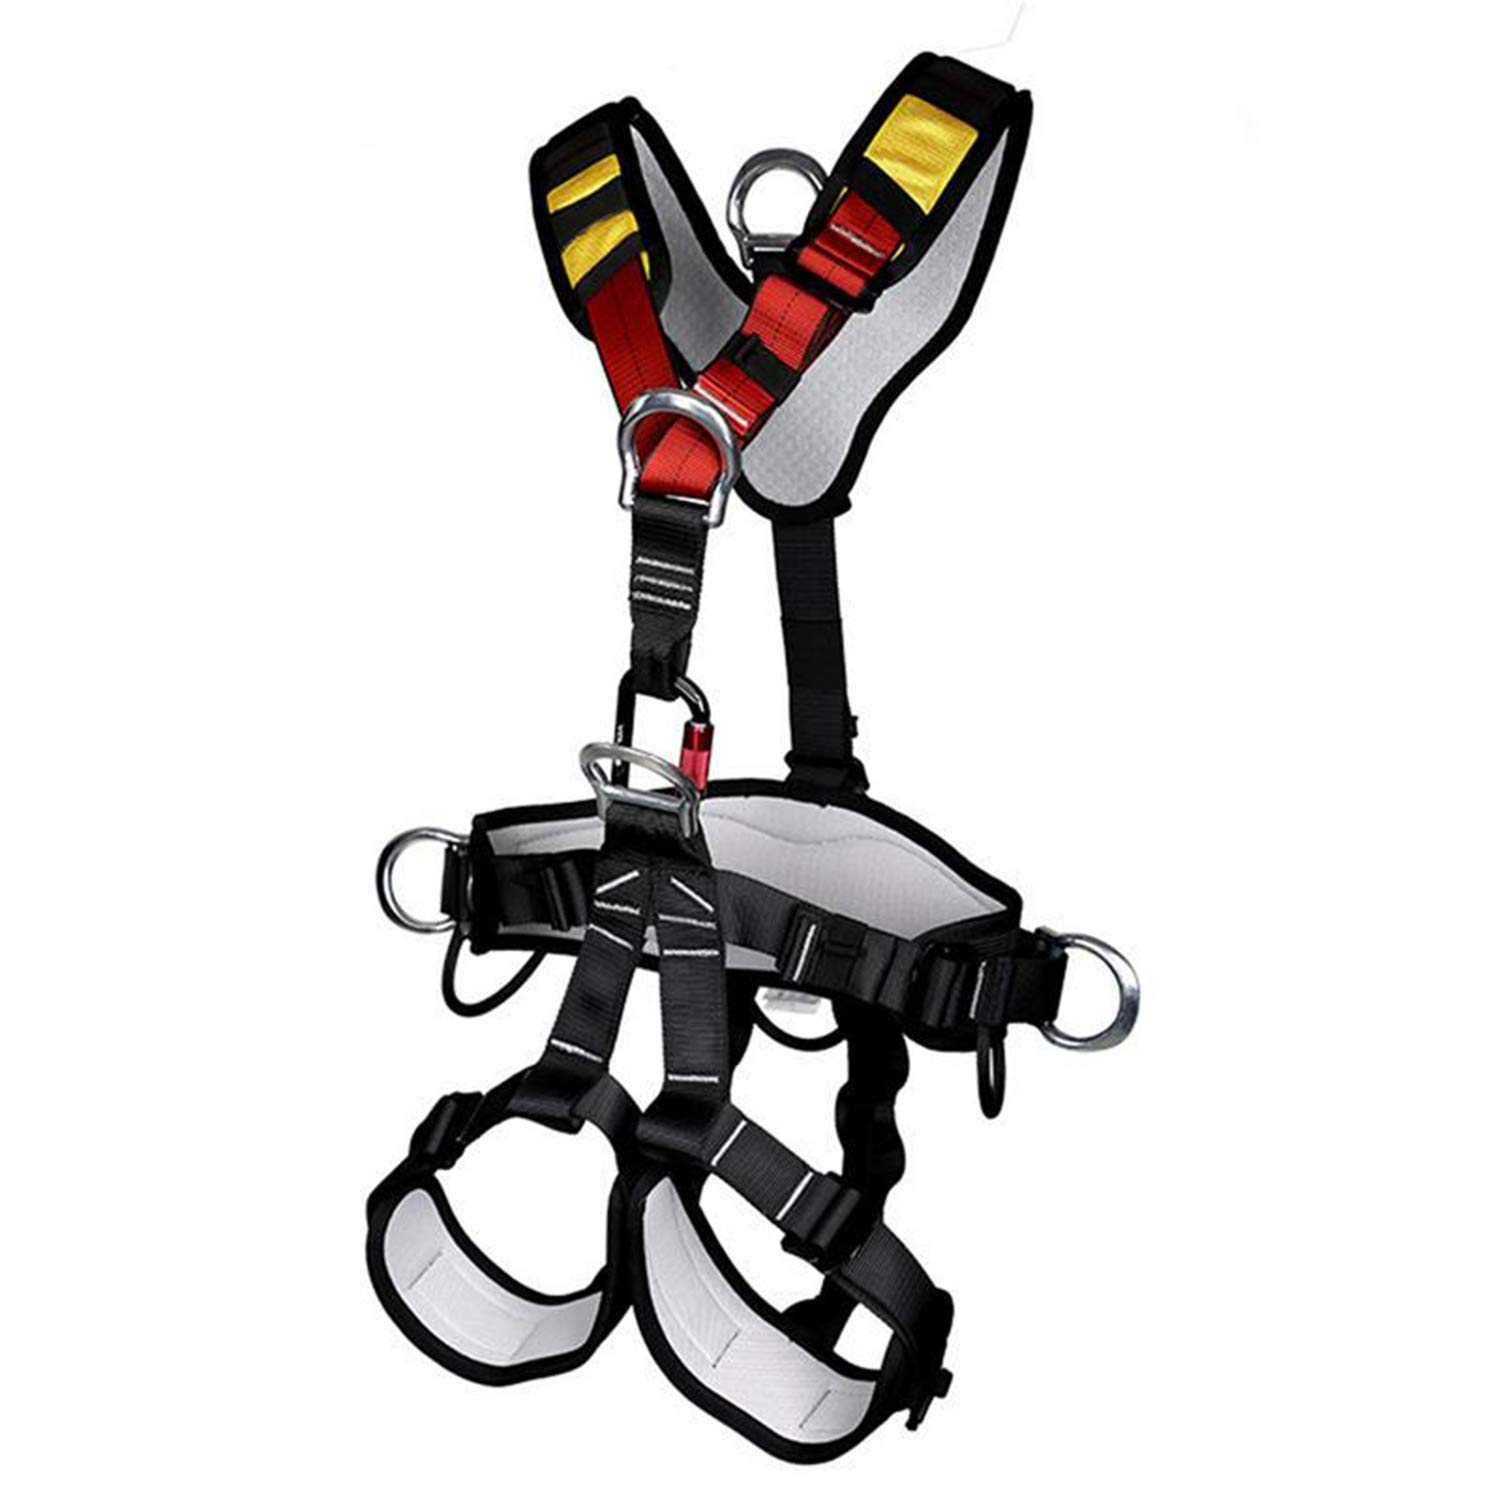 Nrpfell Outdoor Climbing Rock Rappelling Mountaineering Accessories Body Wearing Seat Belt Sitting Waist Bust Protection by Nrpfell (Image #1)